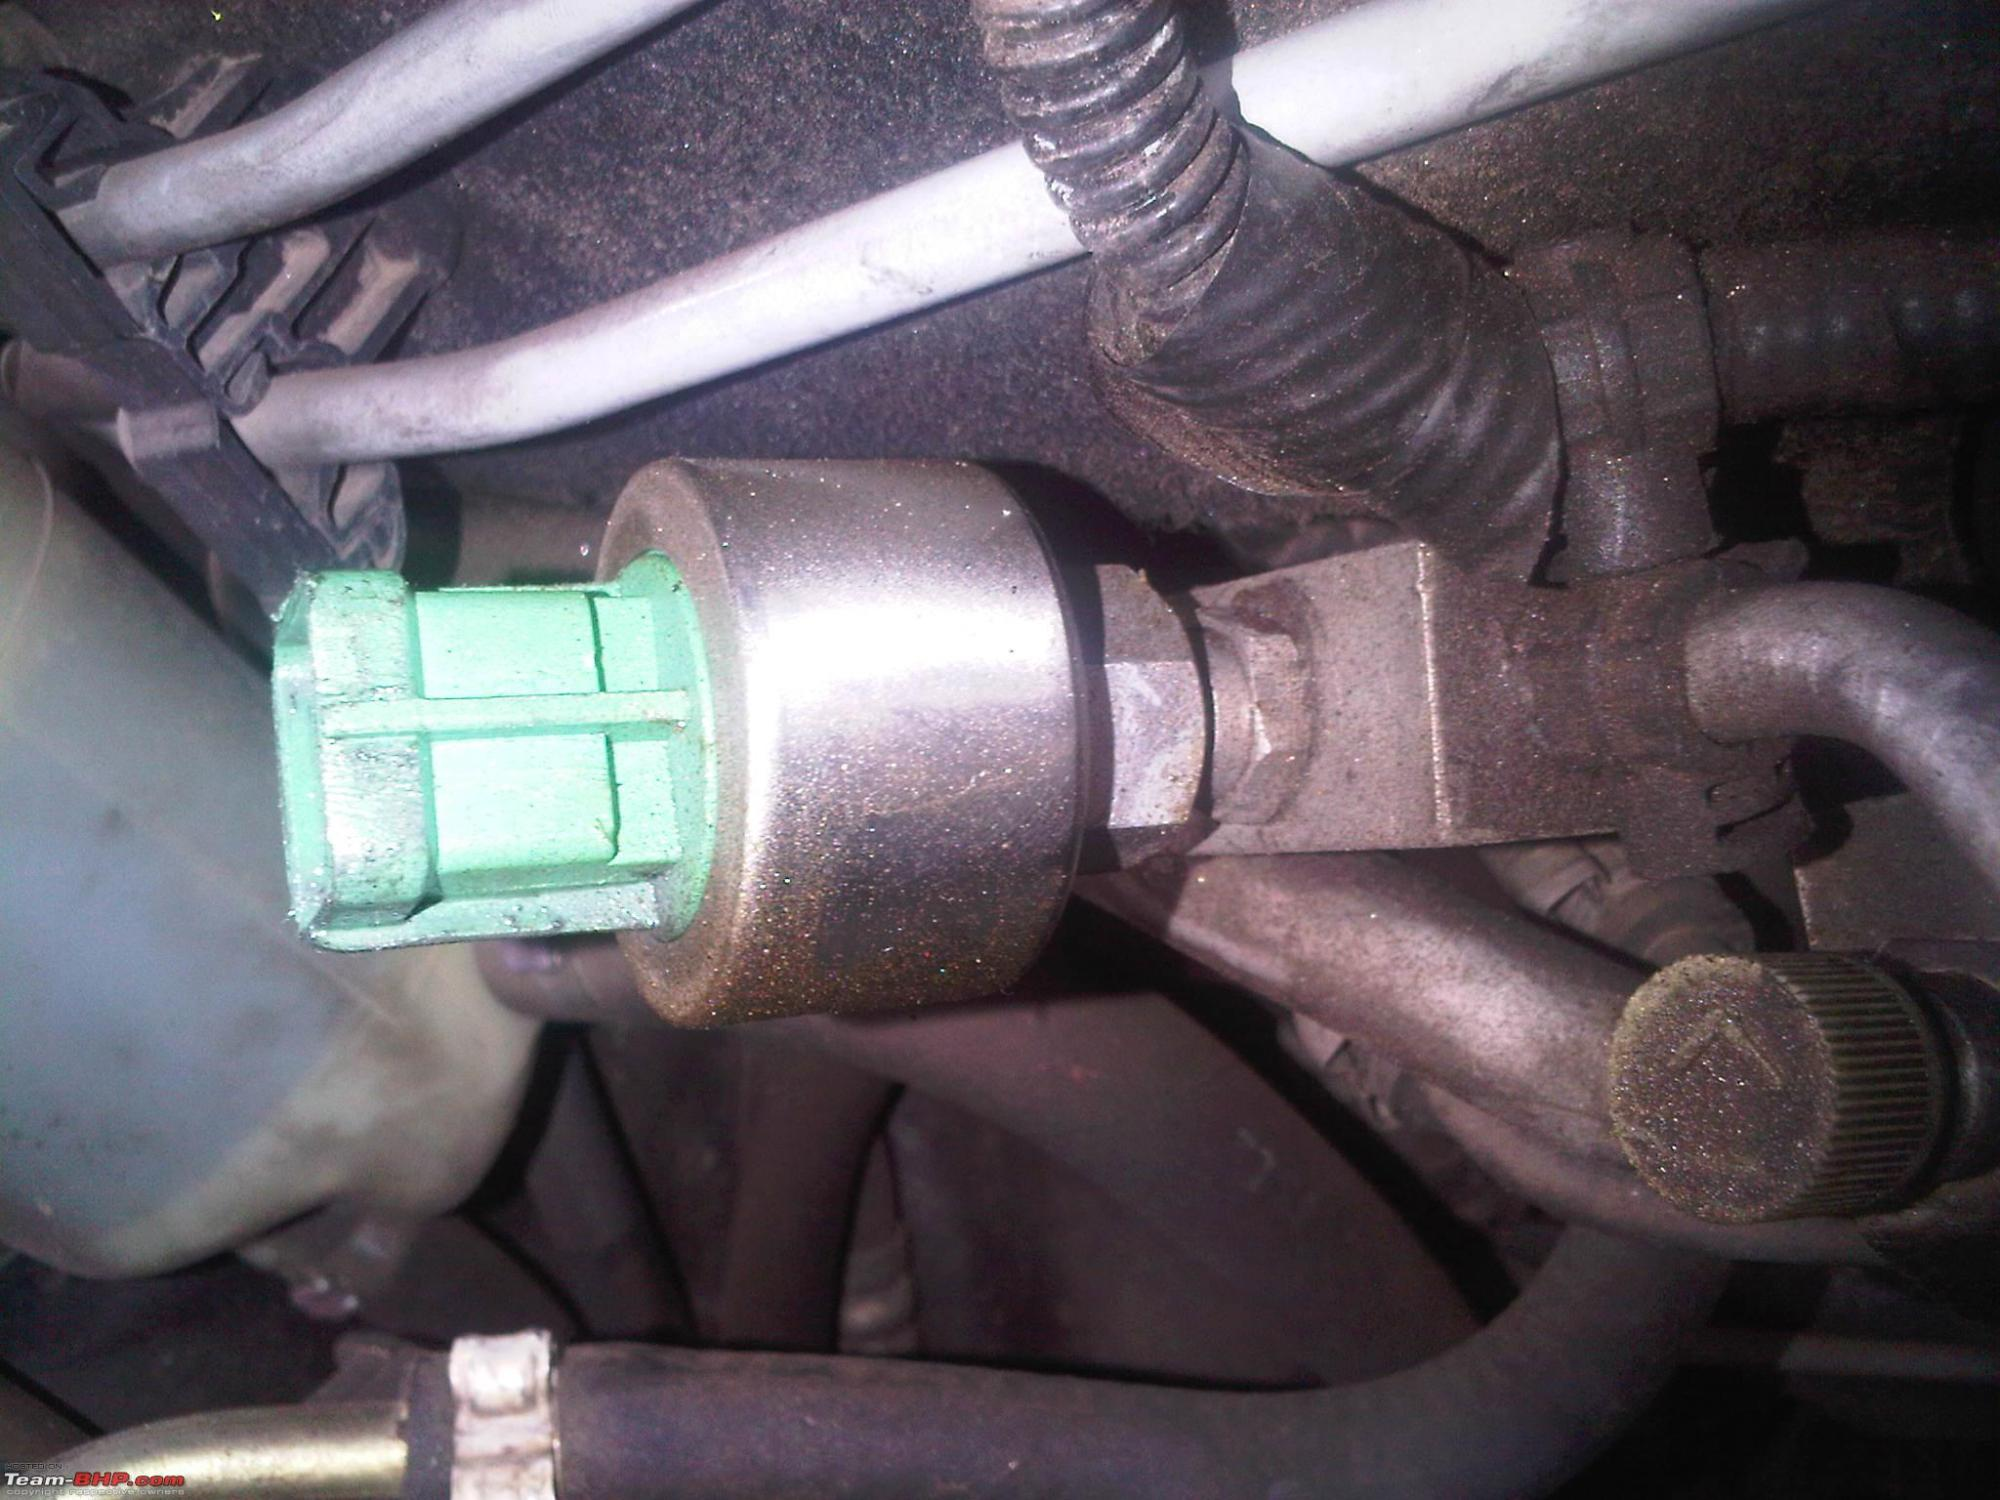 hight resolution of air conditioner problem with punto img00142201009051431 jpg